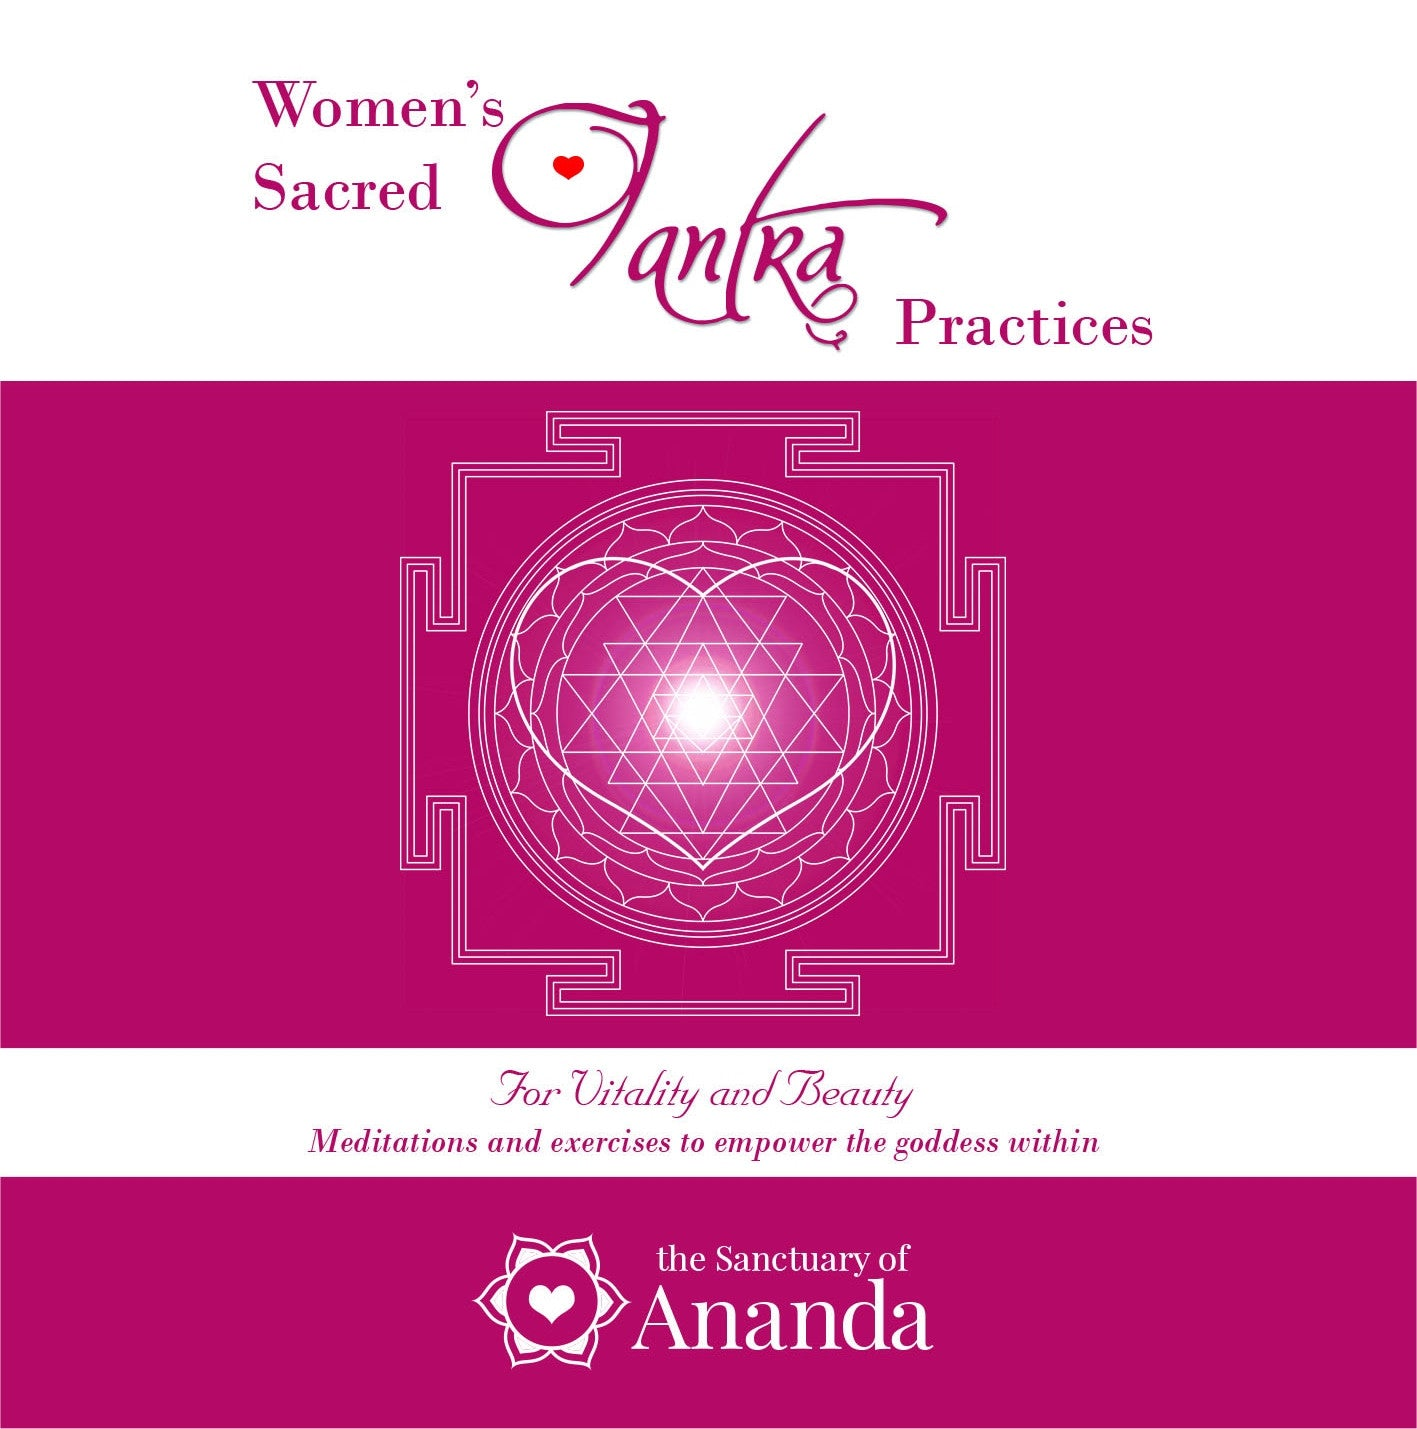 Women's Sacred Tantric Practices CD